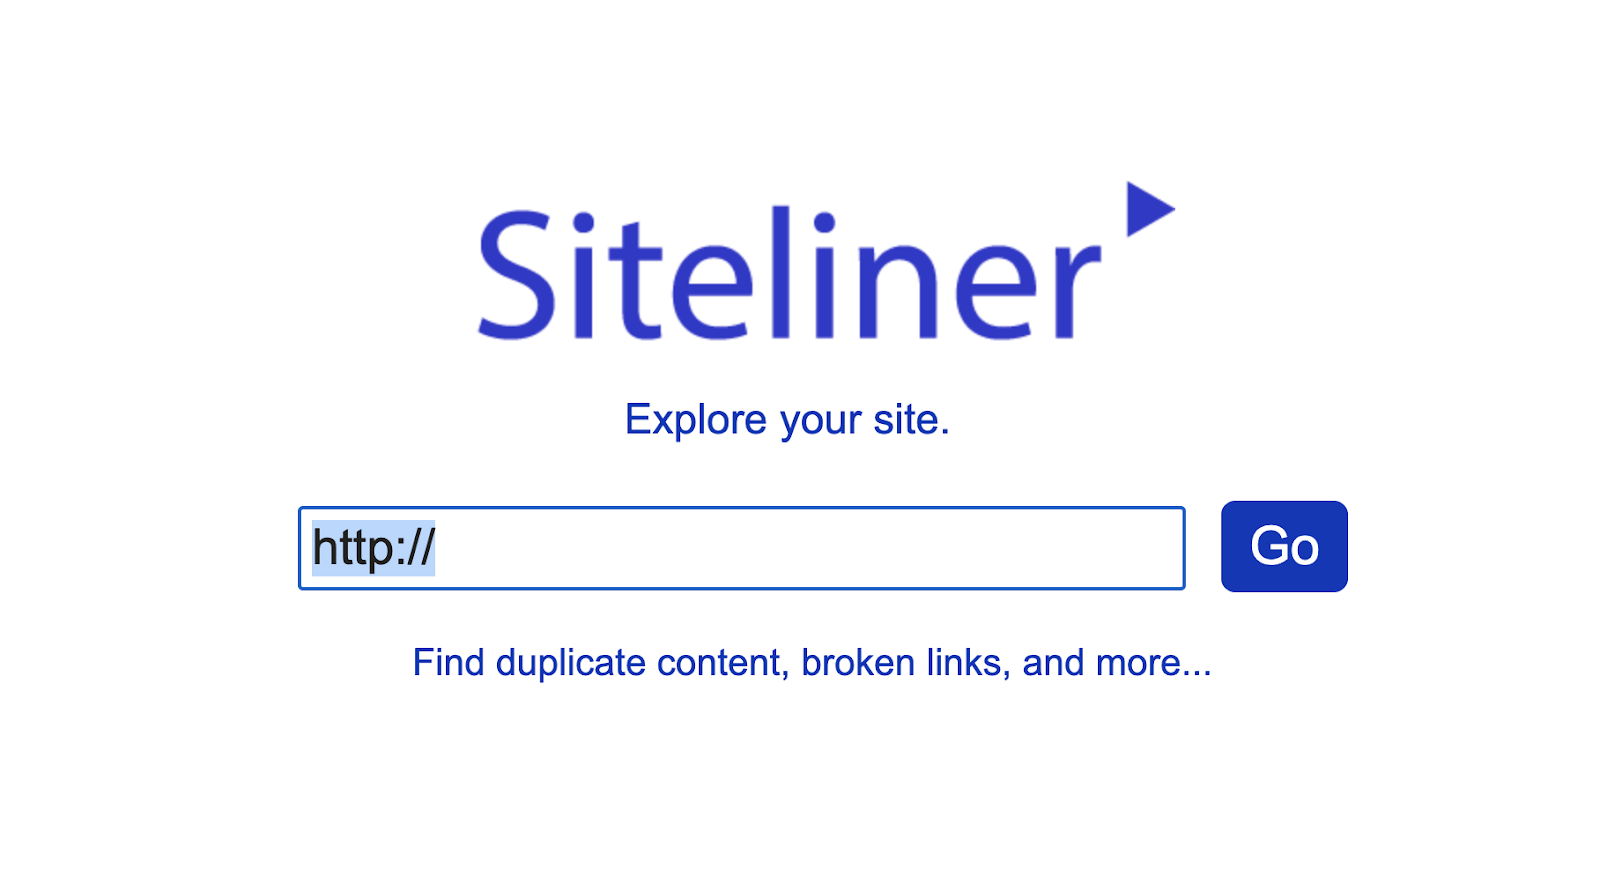 Siteliner checker for checking duplicate content, broken links, and more